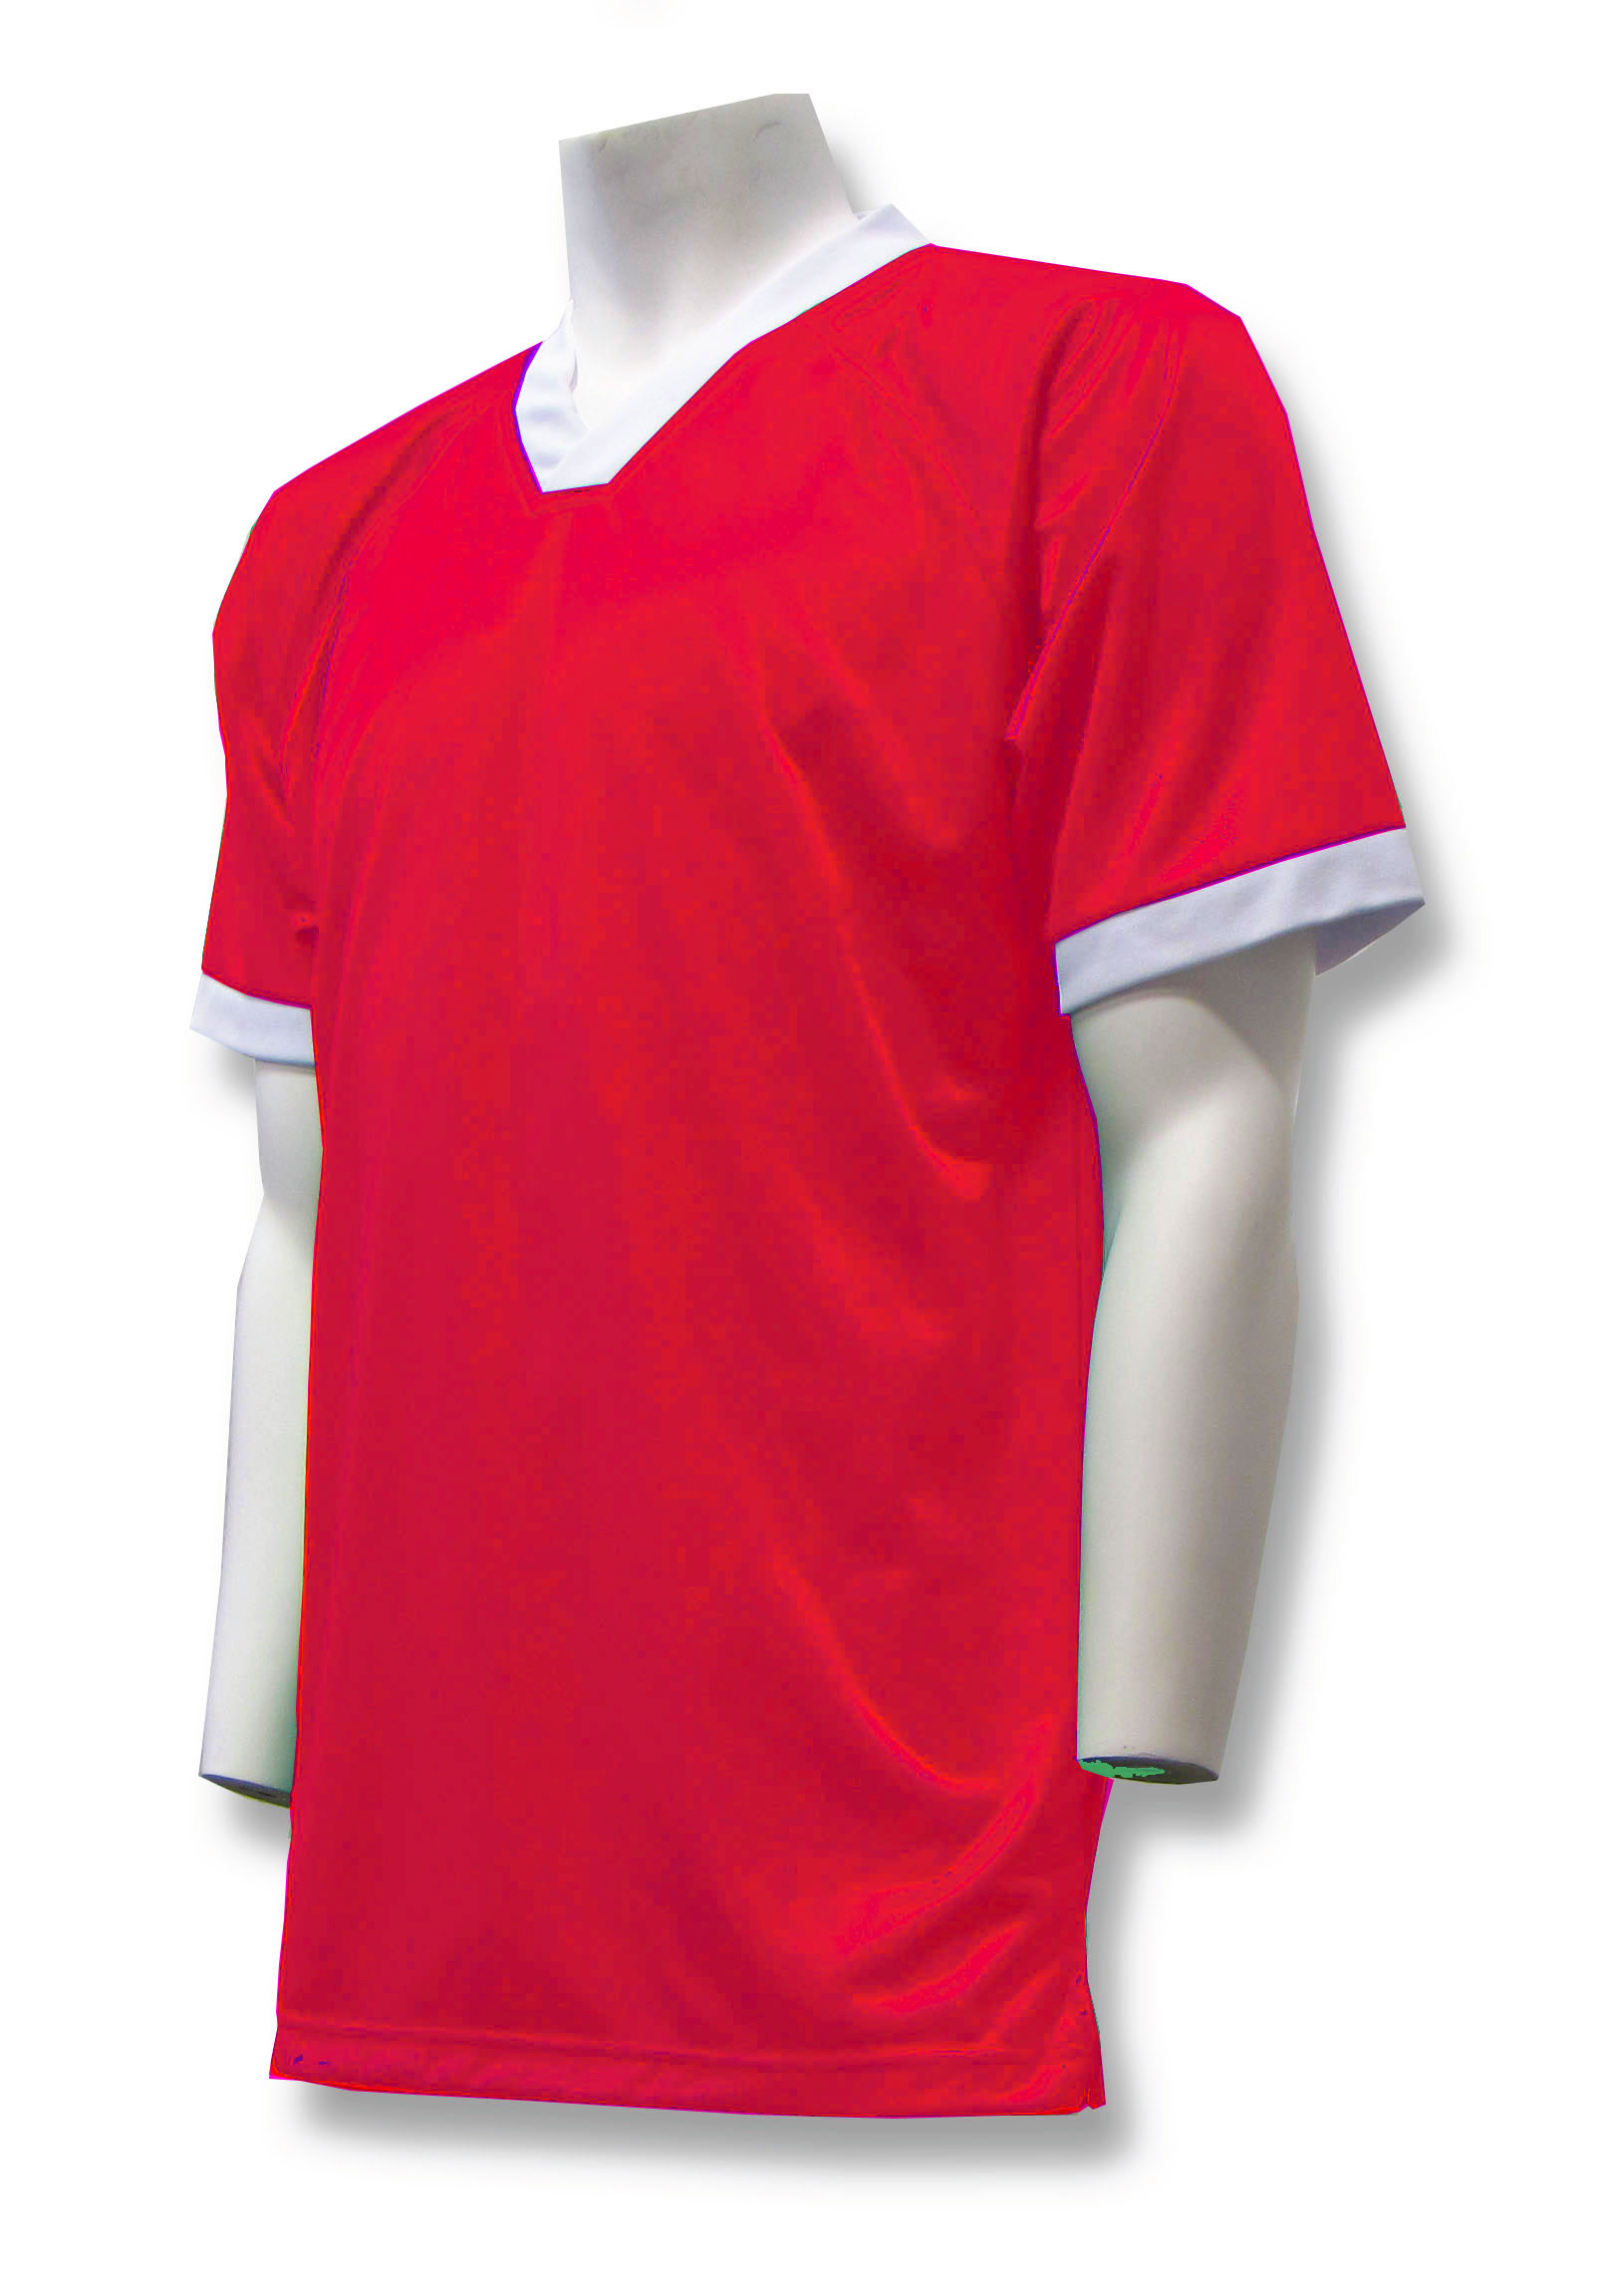 Pioneer soccer jersey in red by Code Four Athletics